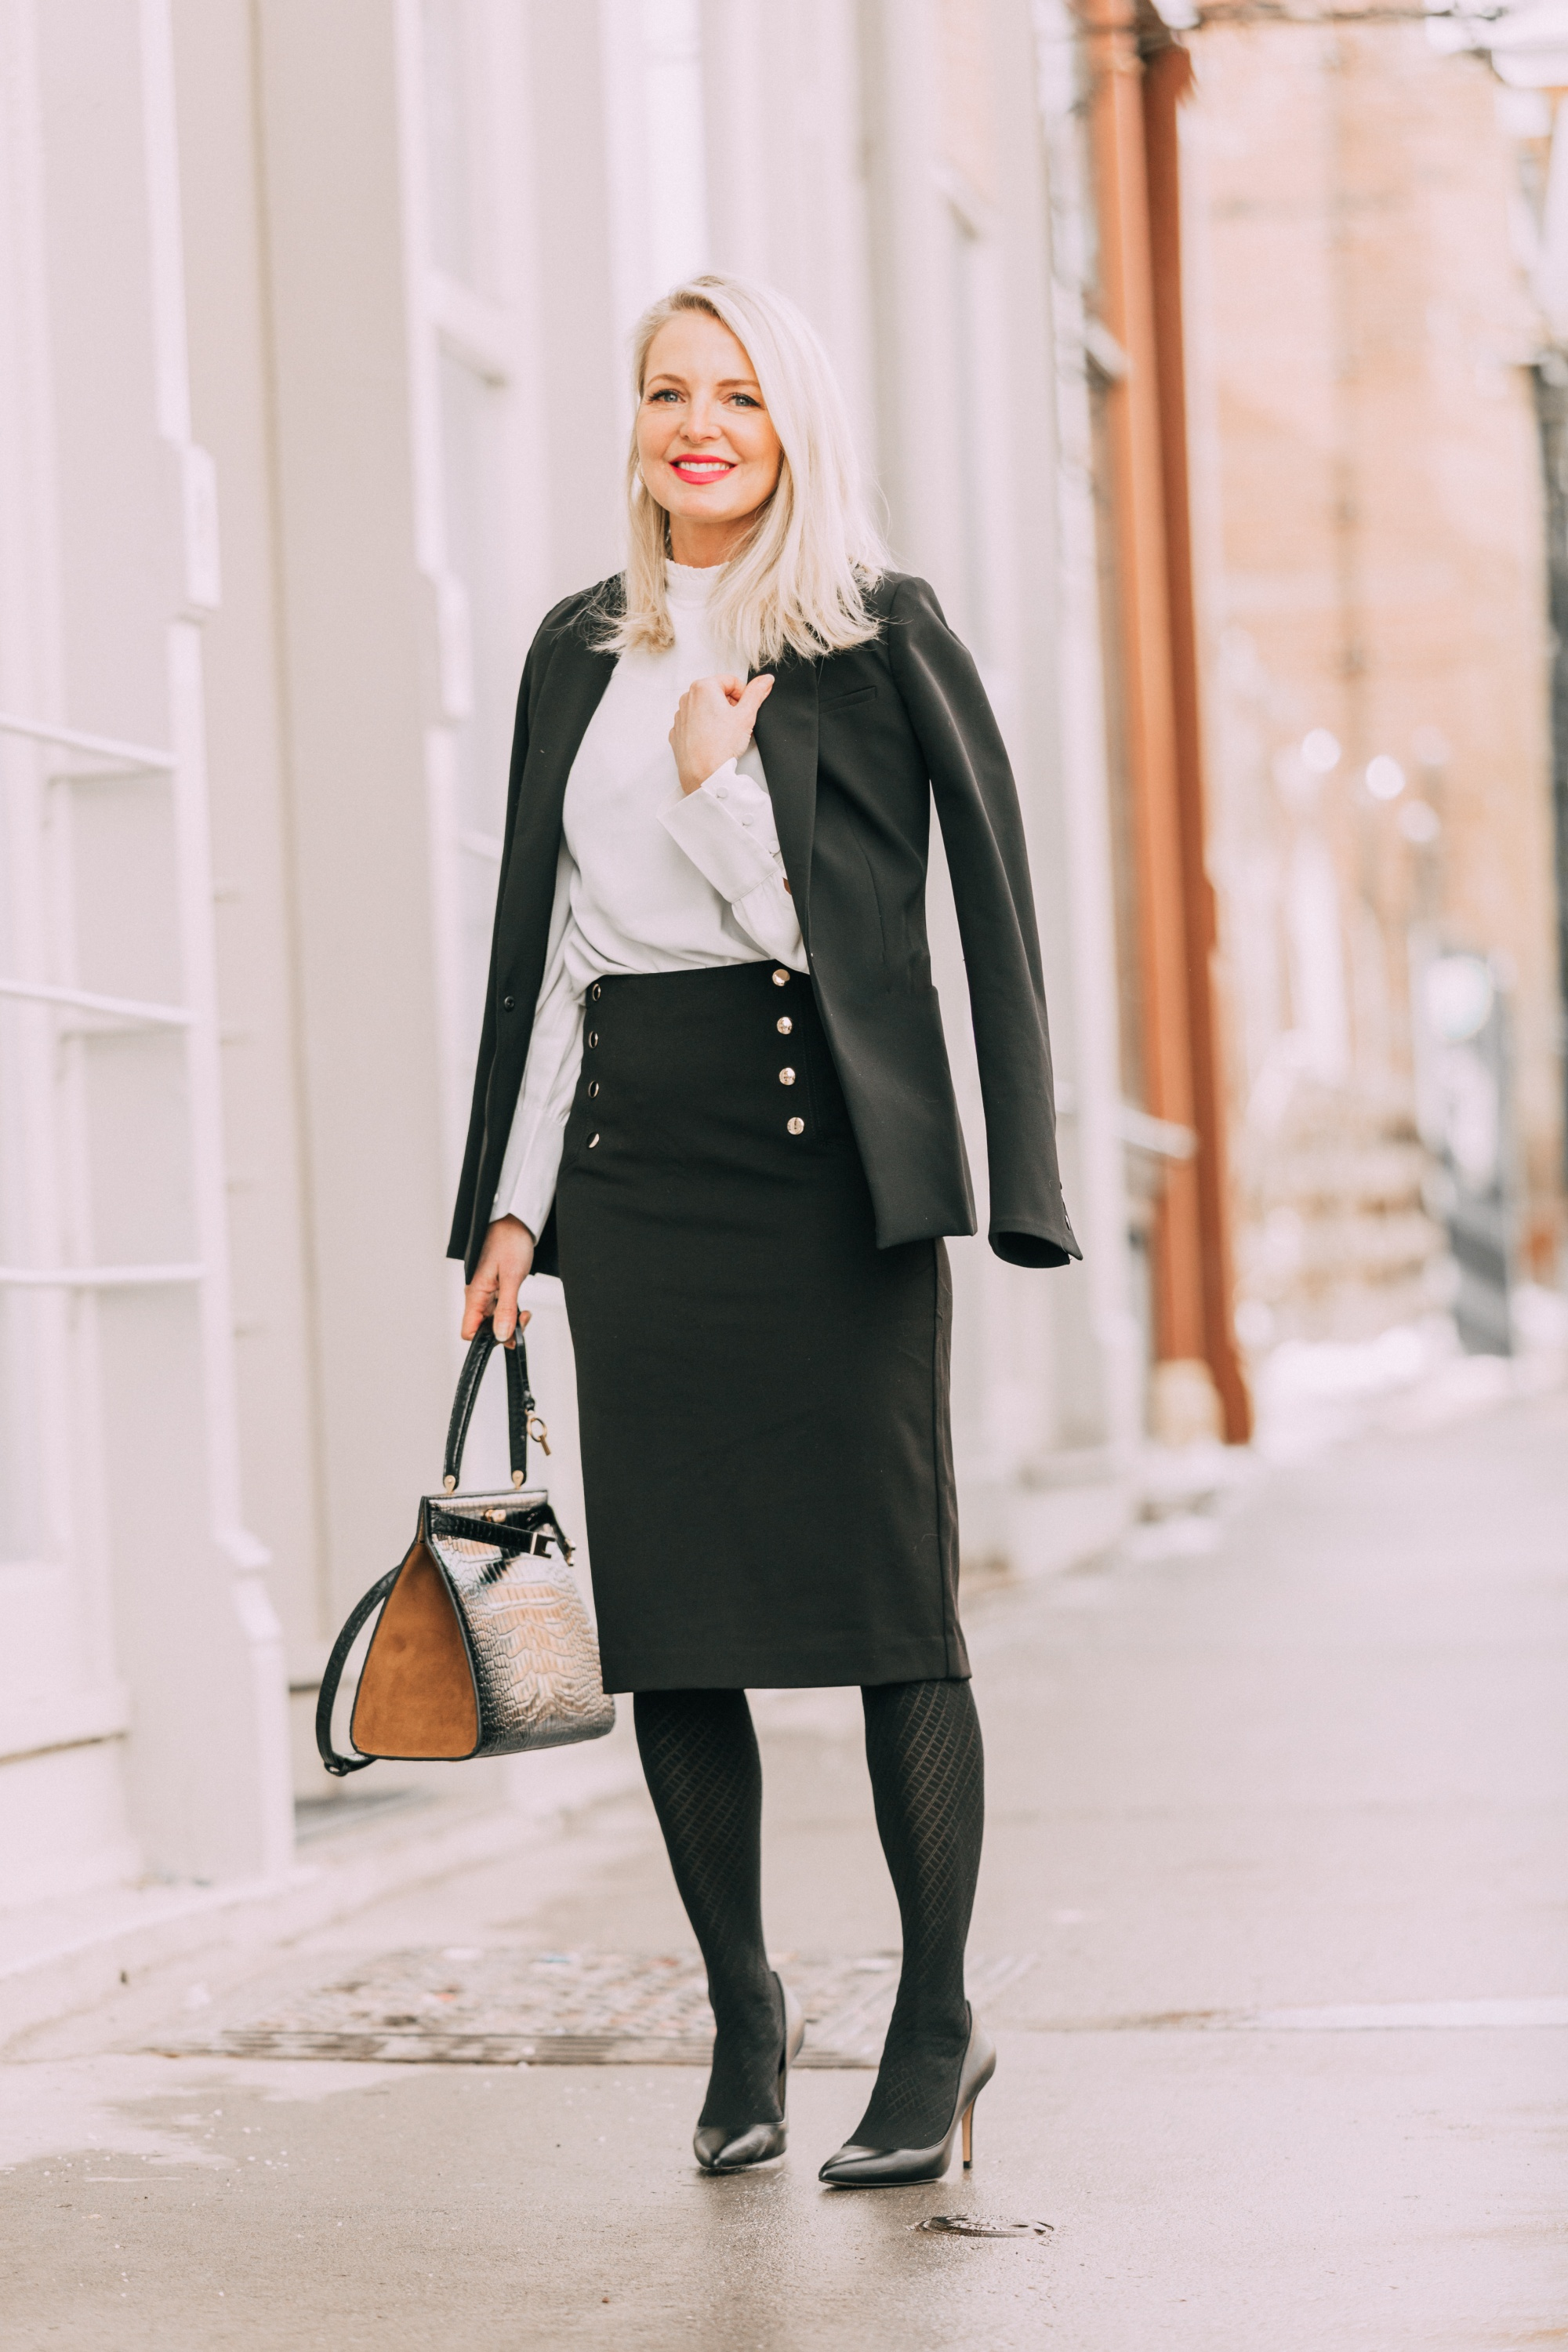 Wardrobe Basics, Fashion blogger Erin Busbee of BusbeeStyle.com sharing wardrobe basics from Ann Taylor wearing a black pencil skirt with sailir buttons, a white ruffle neck blouse, classic black blazer, black tights, and black pumps all from Ann Taylor in Telluride, Colorado